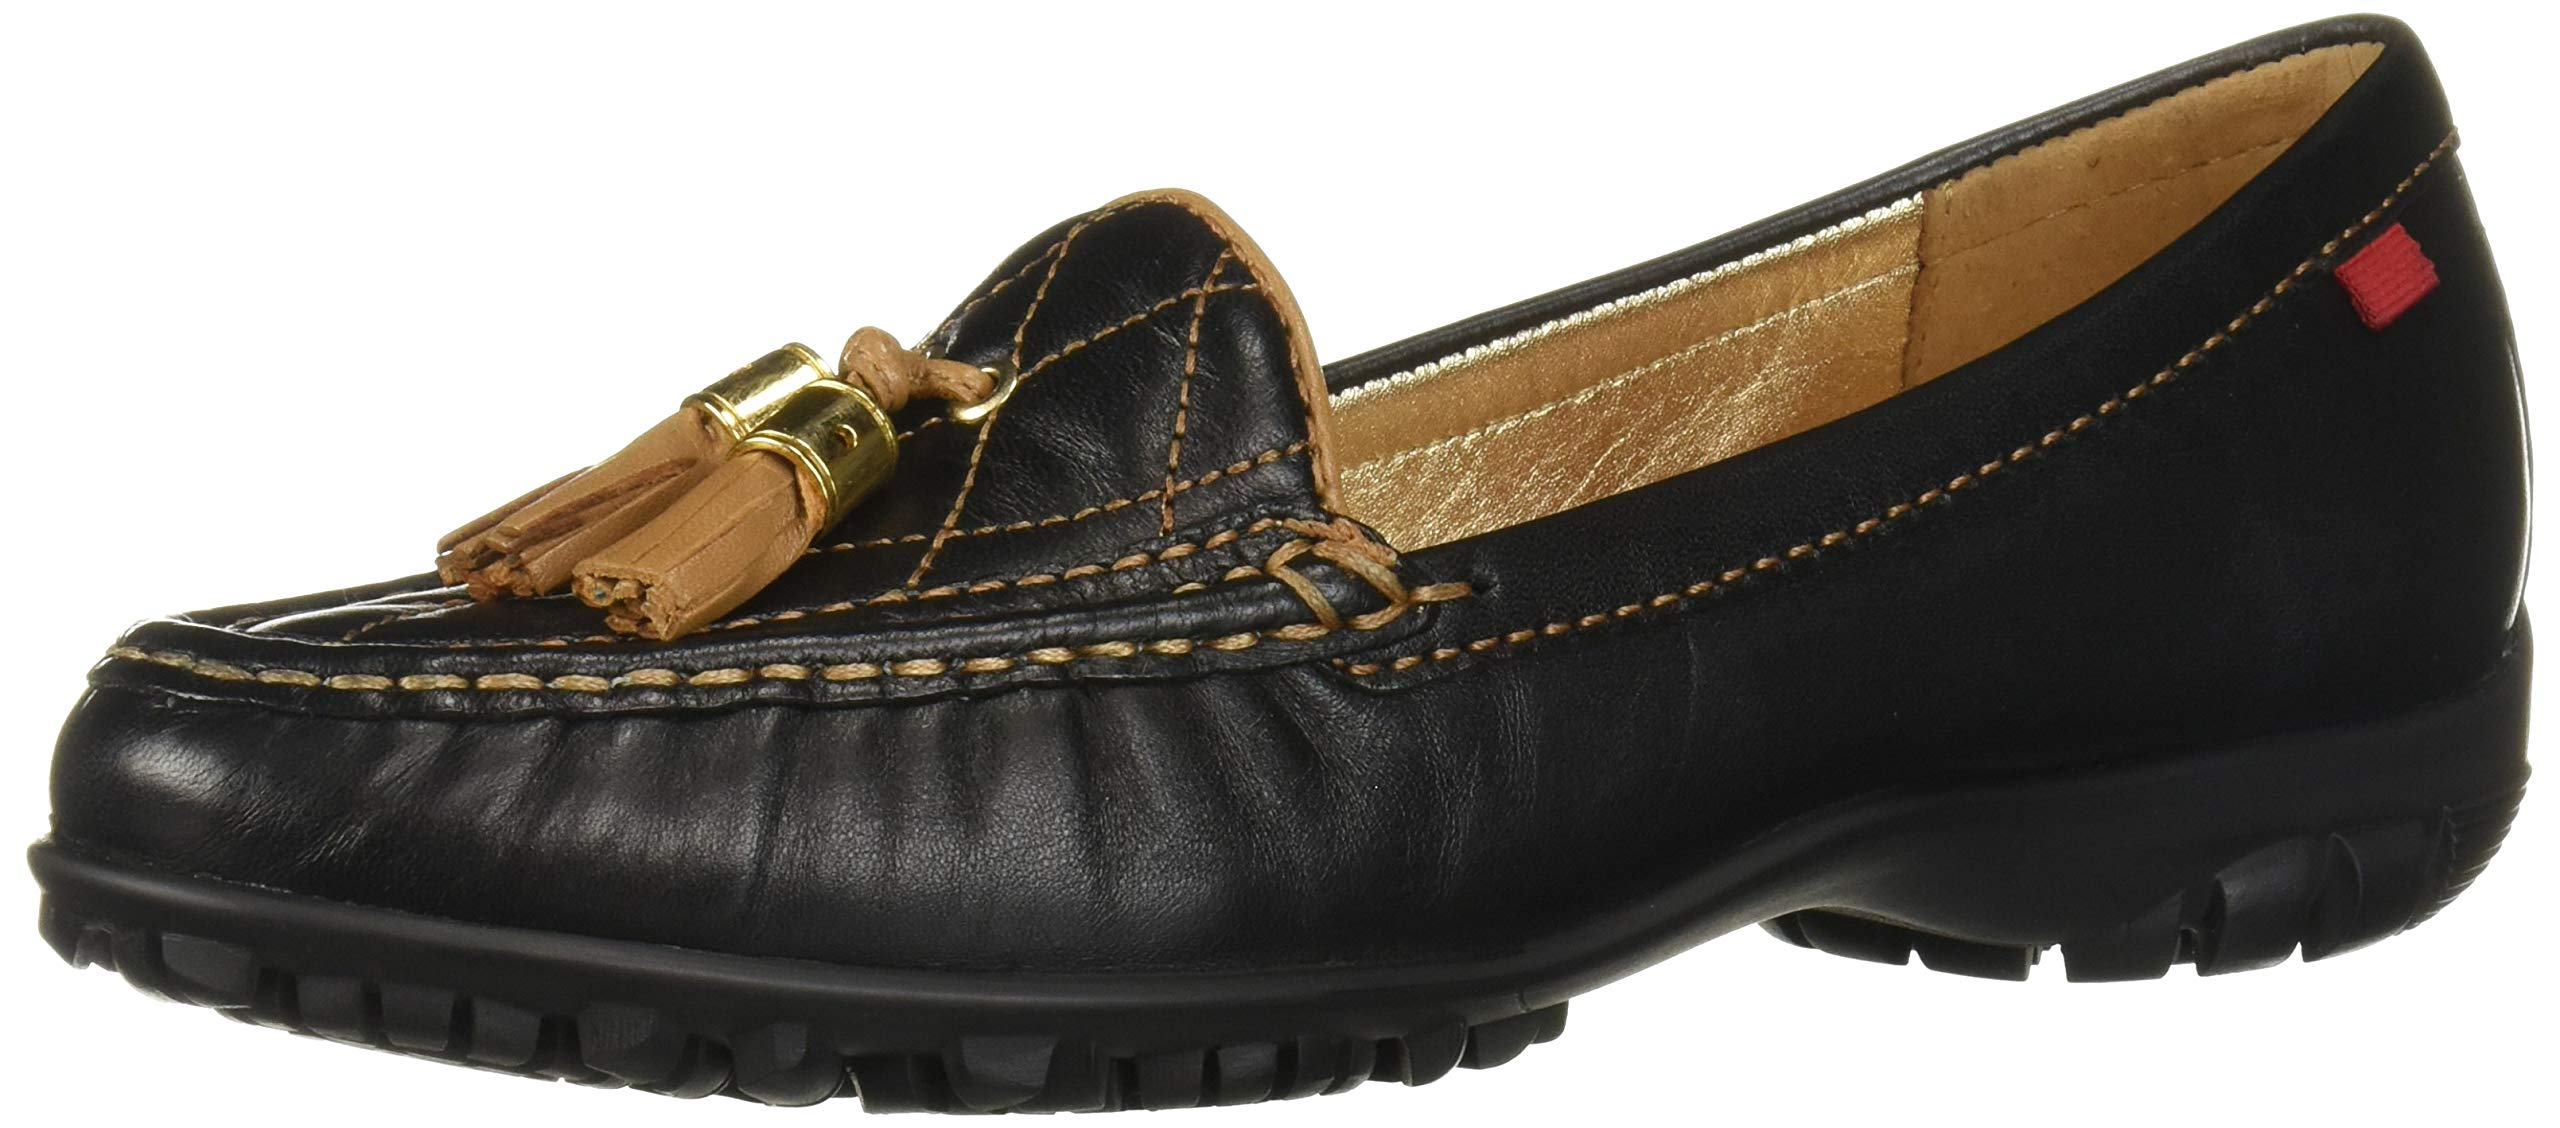 Marc Joseph New York Women's Womens Genuine Leather Made in Brazil Wall Street Golf Shoe Athletic Shoe, Black nappa/Tan, 6.5 M US by MARC JOSEPH NEW YORK